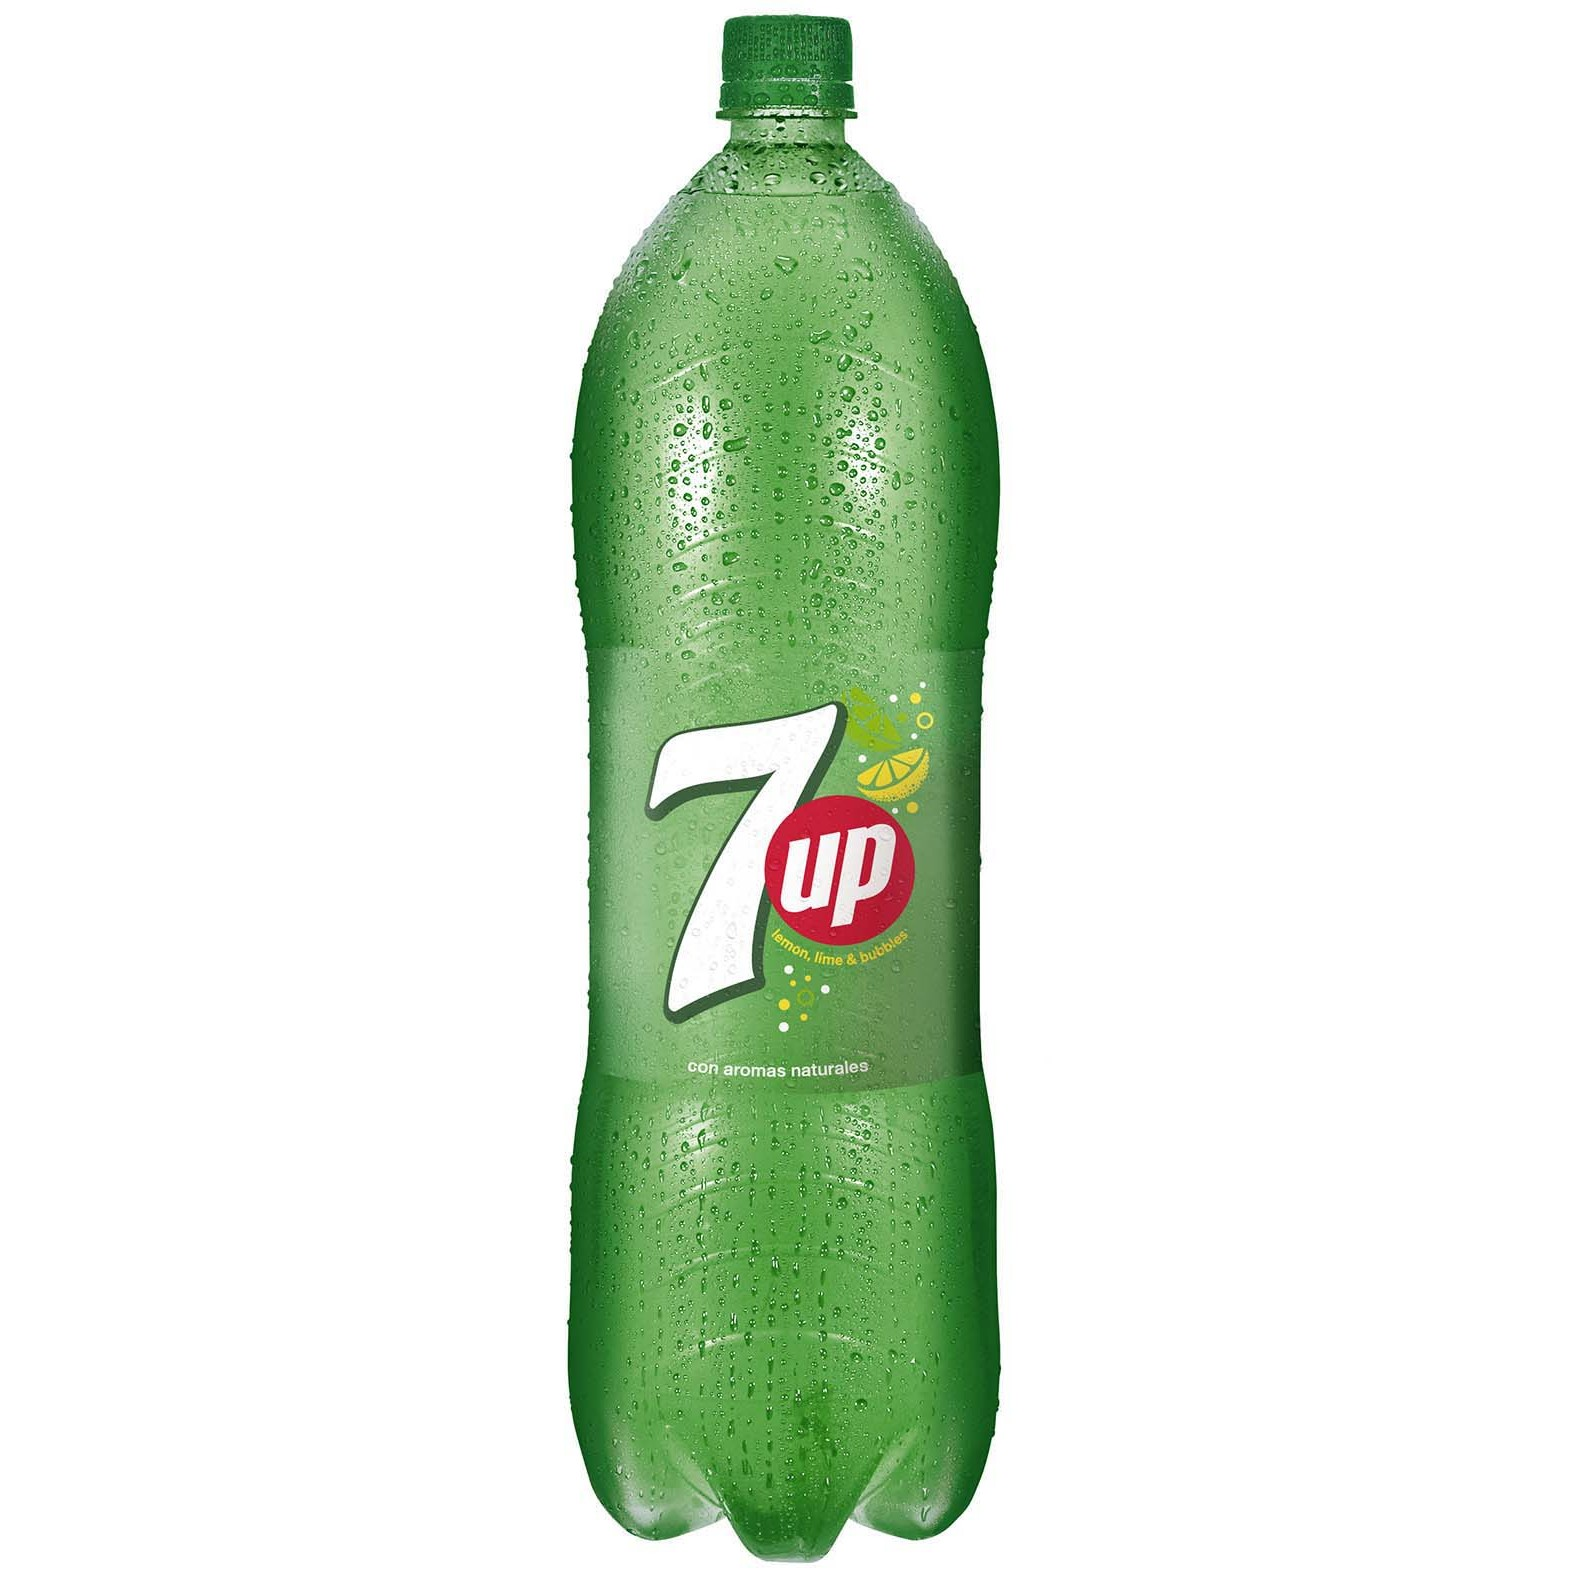 7up lima lima de 2l. en botella